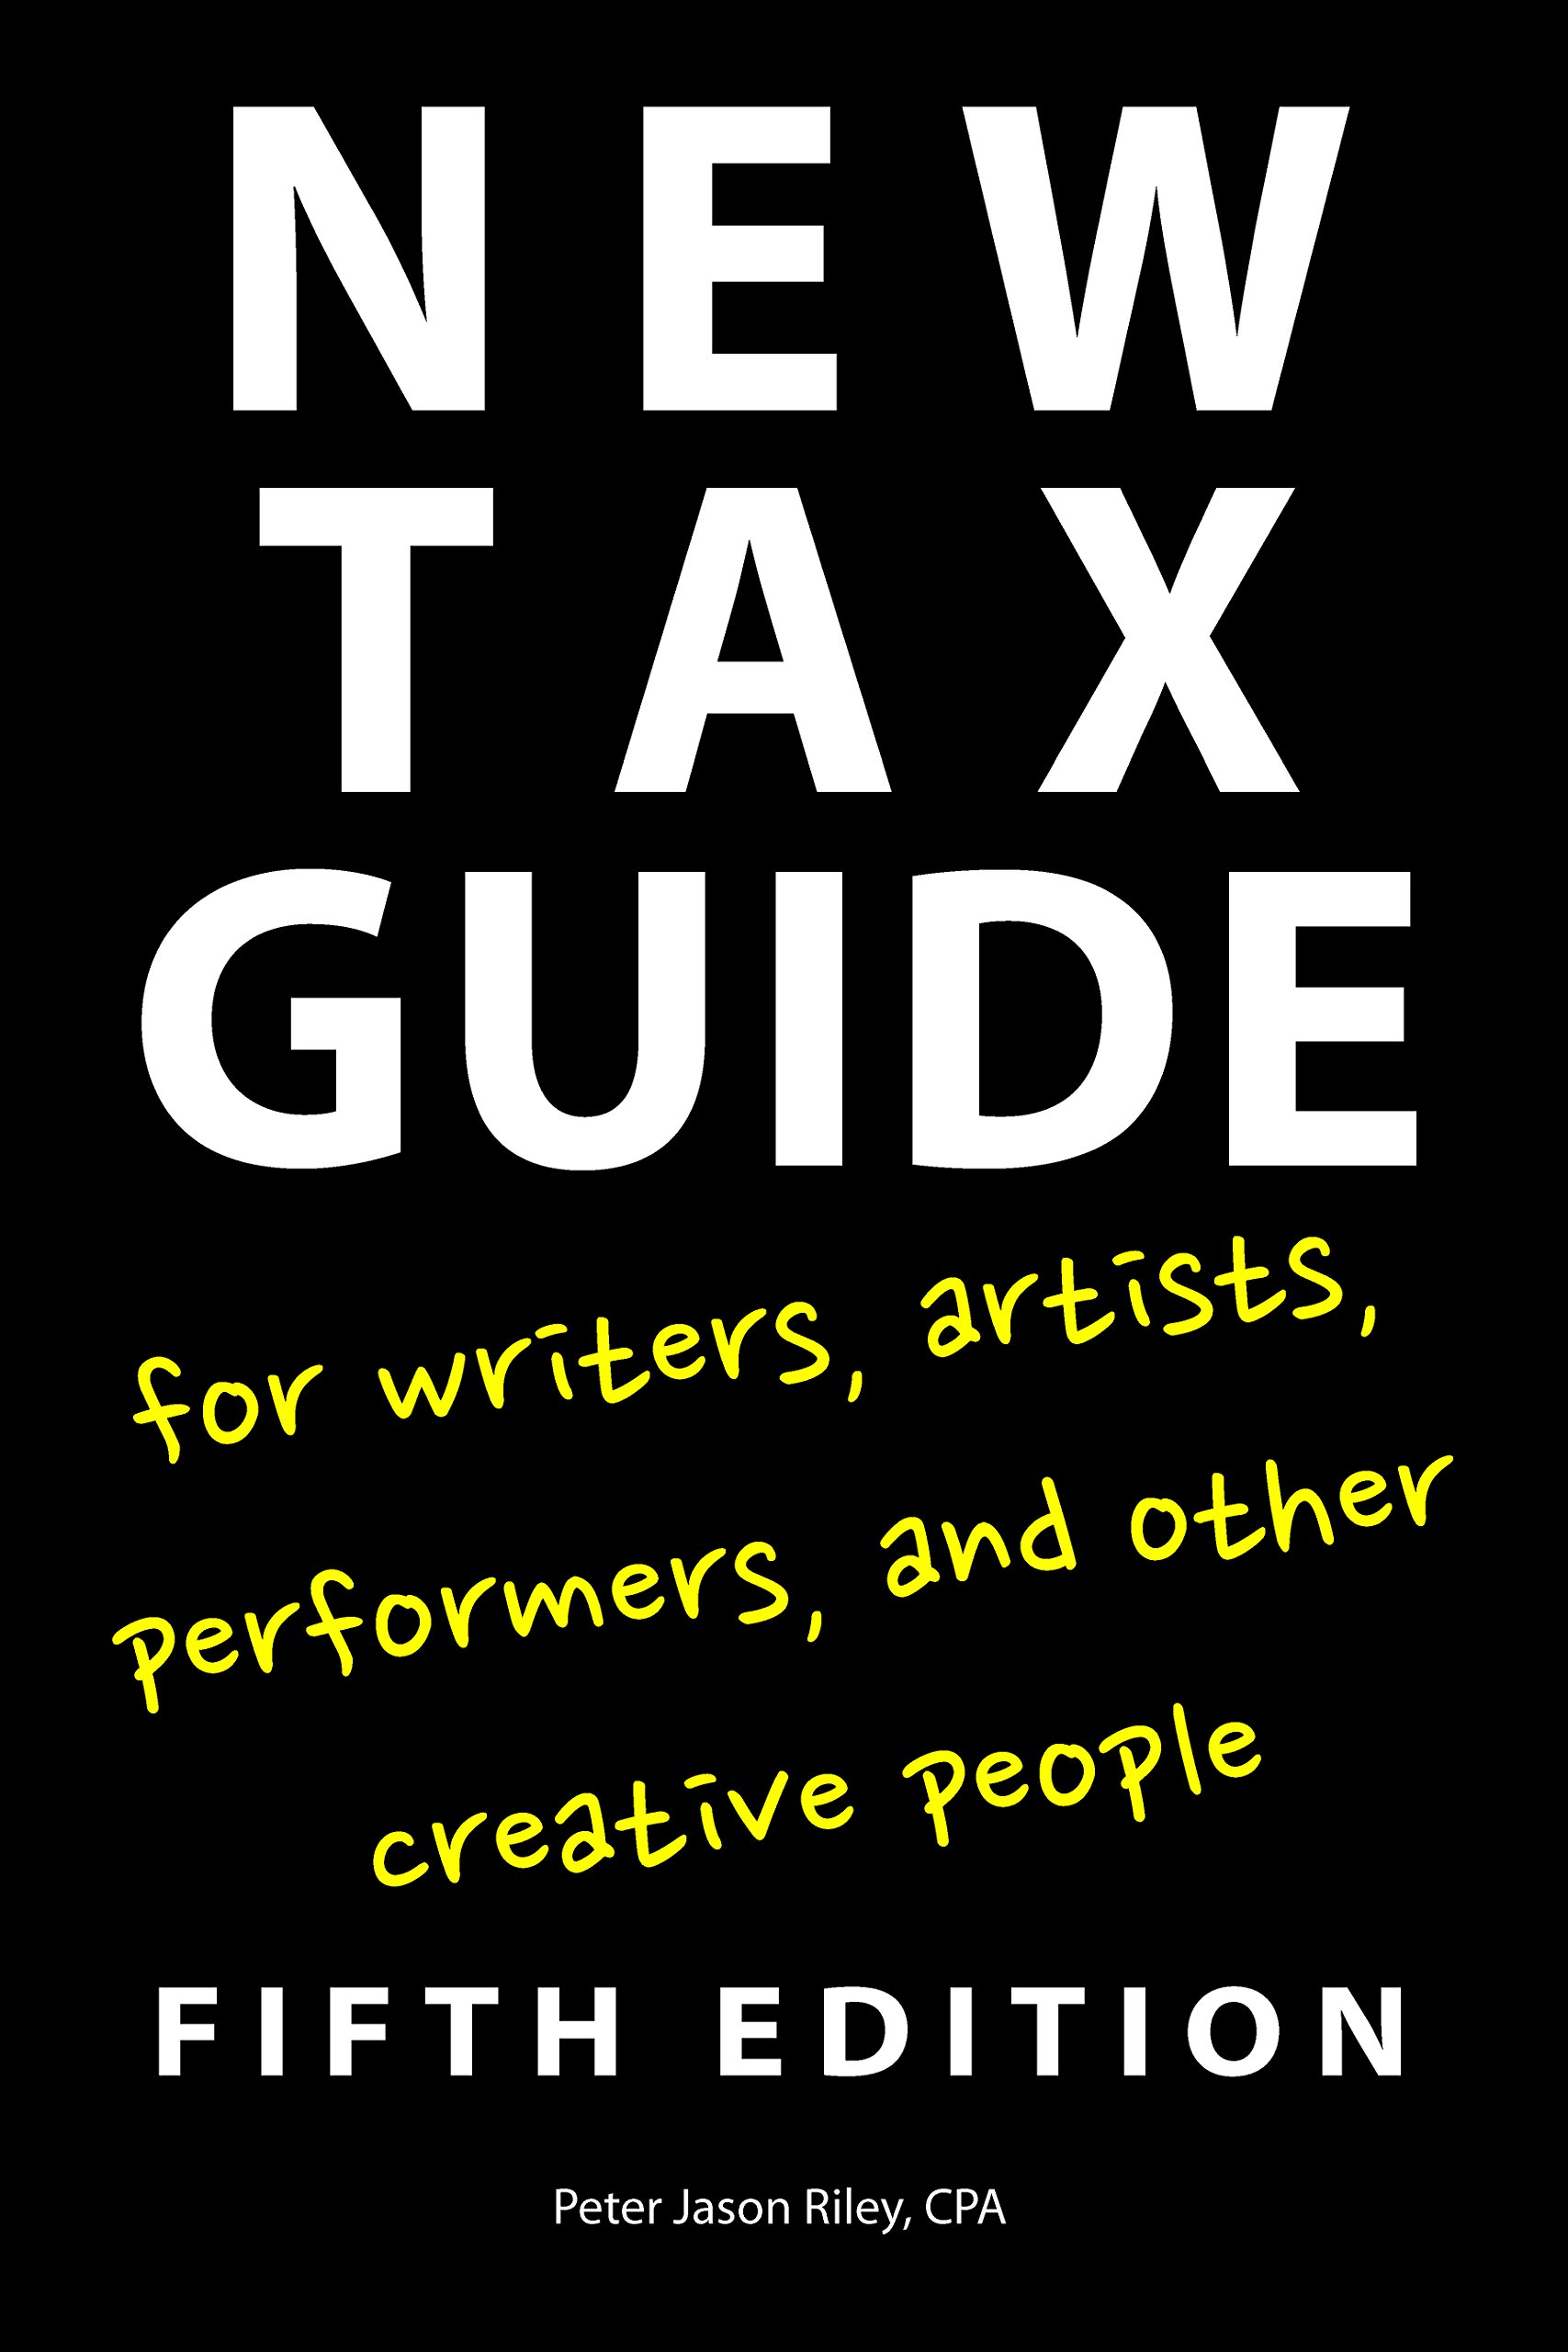 Image OfNew Tax Guide For Writers, Artists, Performers, And Other Creative People